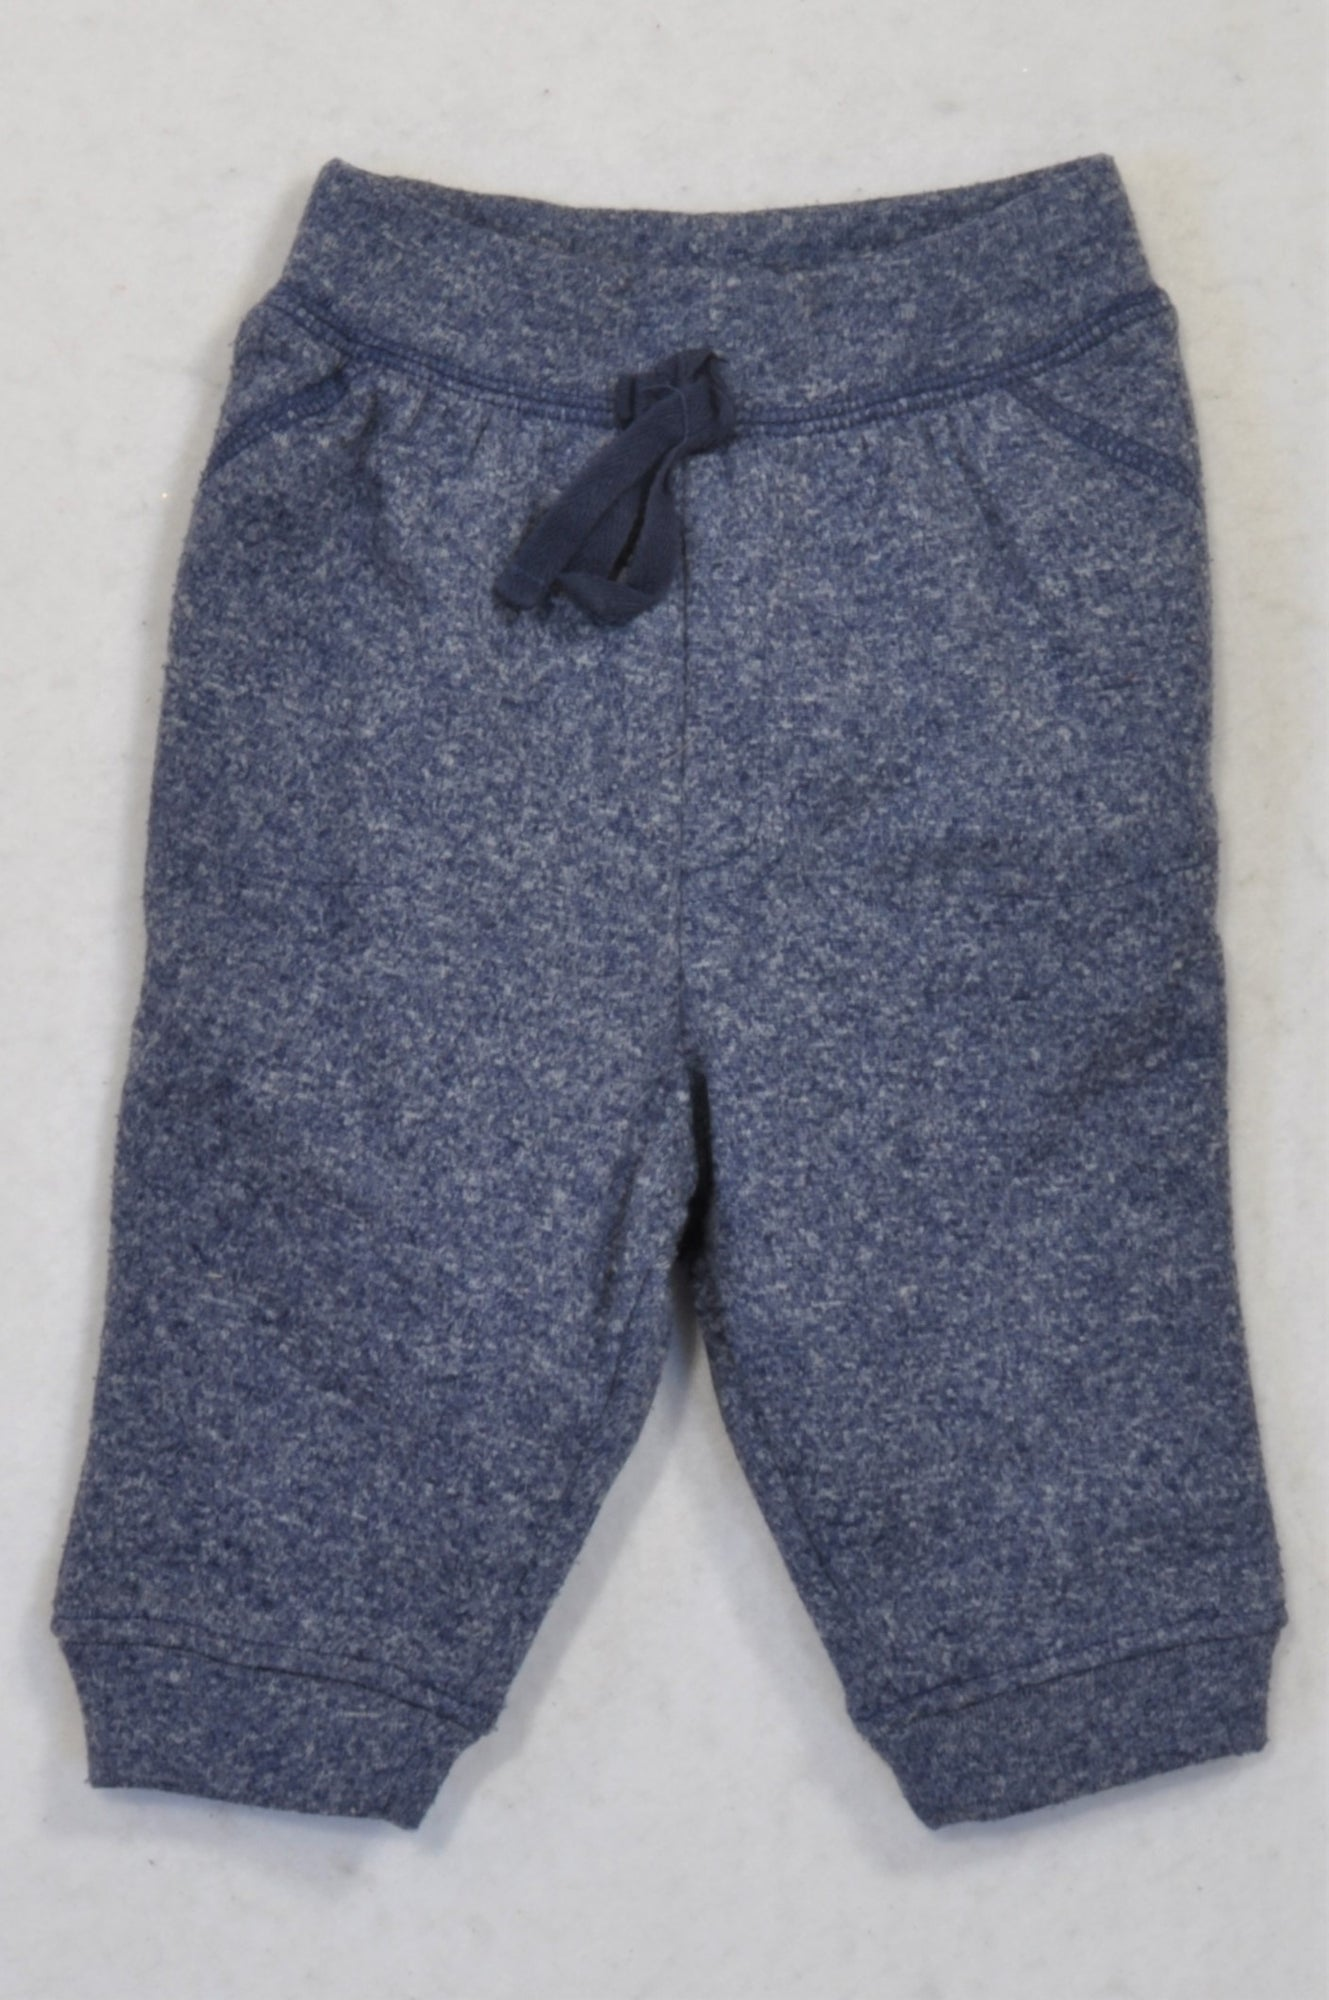 Ackermans Blue Heathered Pants Boys 3-6 months